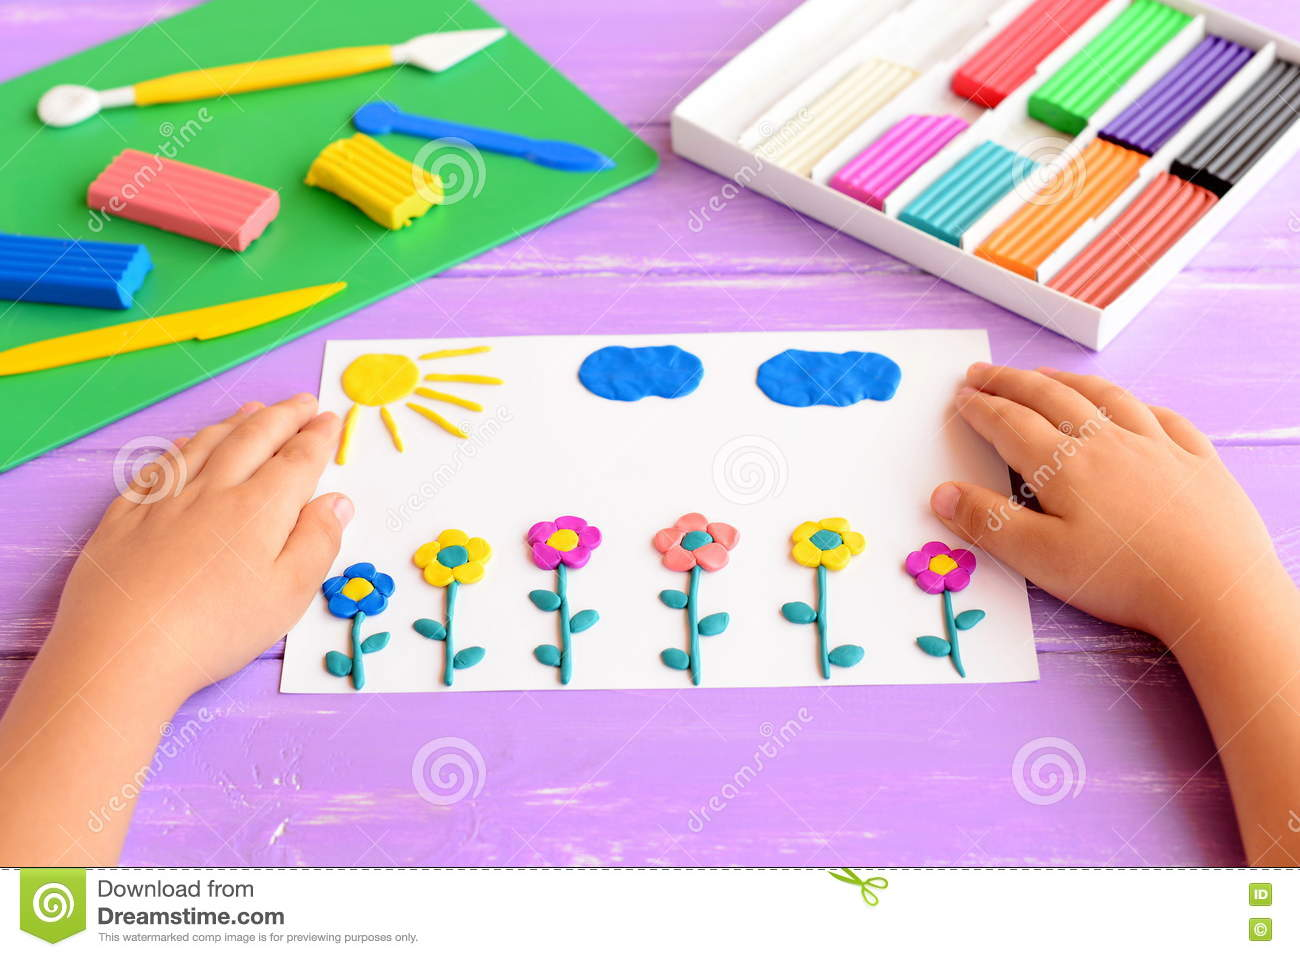 Childrens arts and crafts supplies -  Arts And Crafts Supplies For Kids Child Shows A Card Download